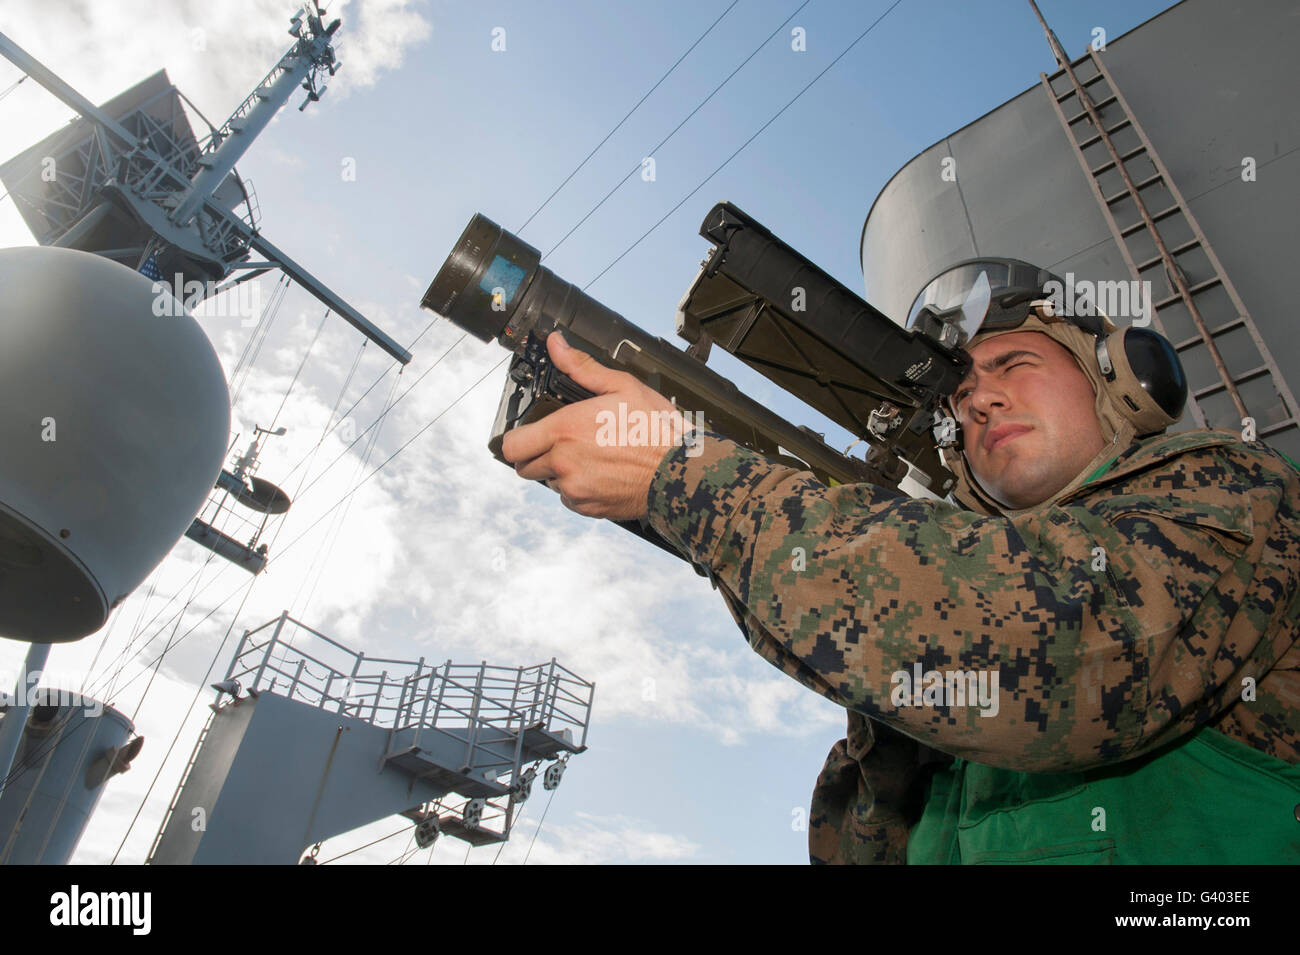 Soldier practices tracking with a trainer version of a Stinger missile launcher. - Stock Image